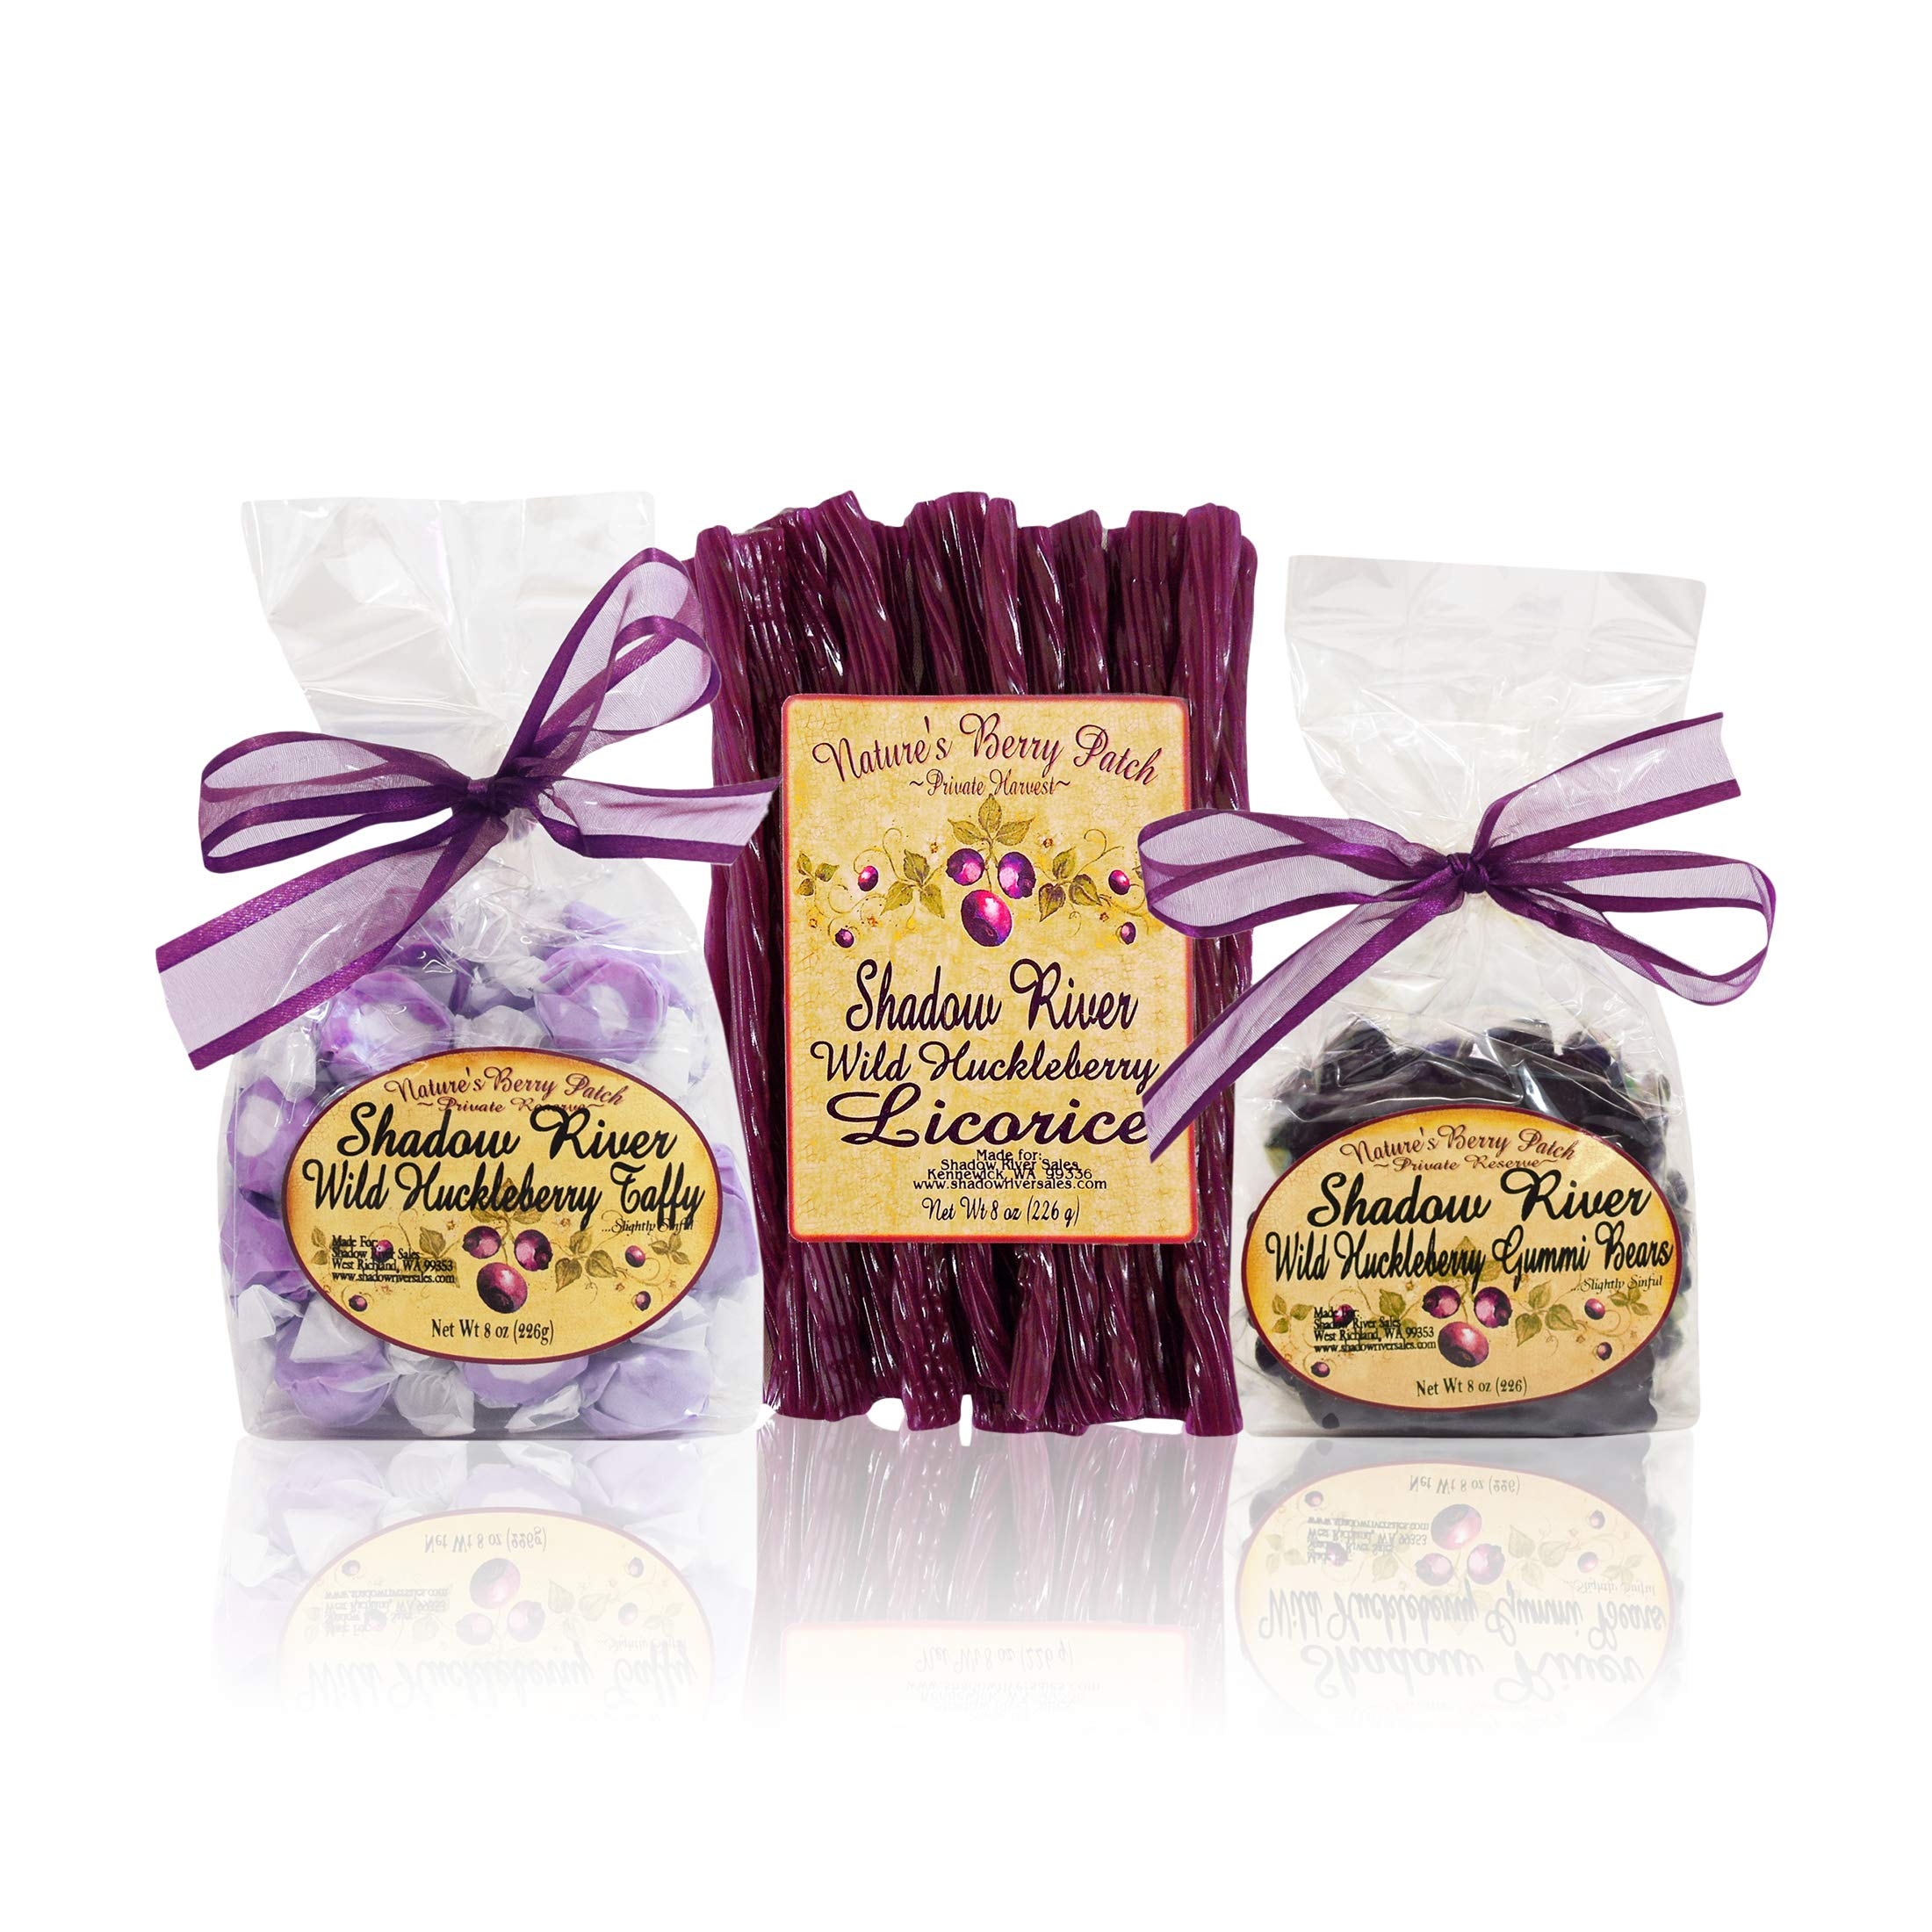 Shadow River Wild Huckleberry Candy Sampler (Licorice, Taffy, Gummi Bears) by Shadow River